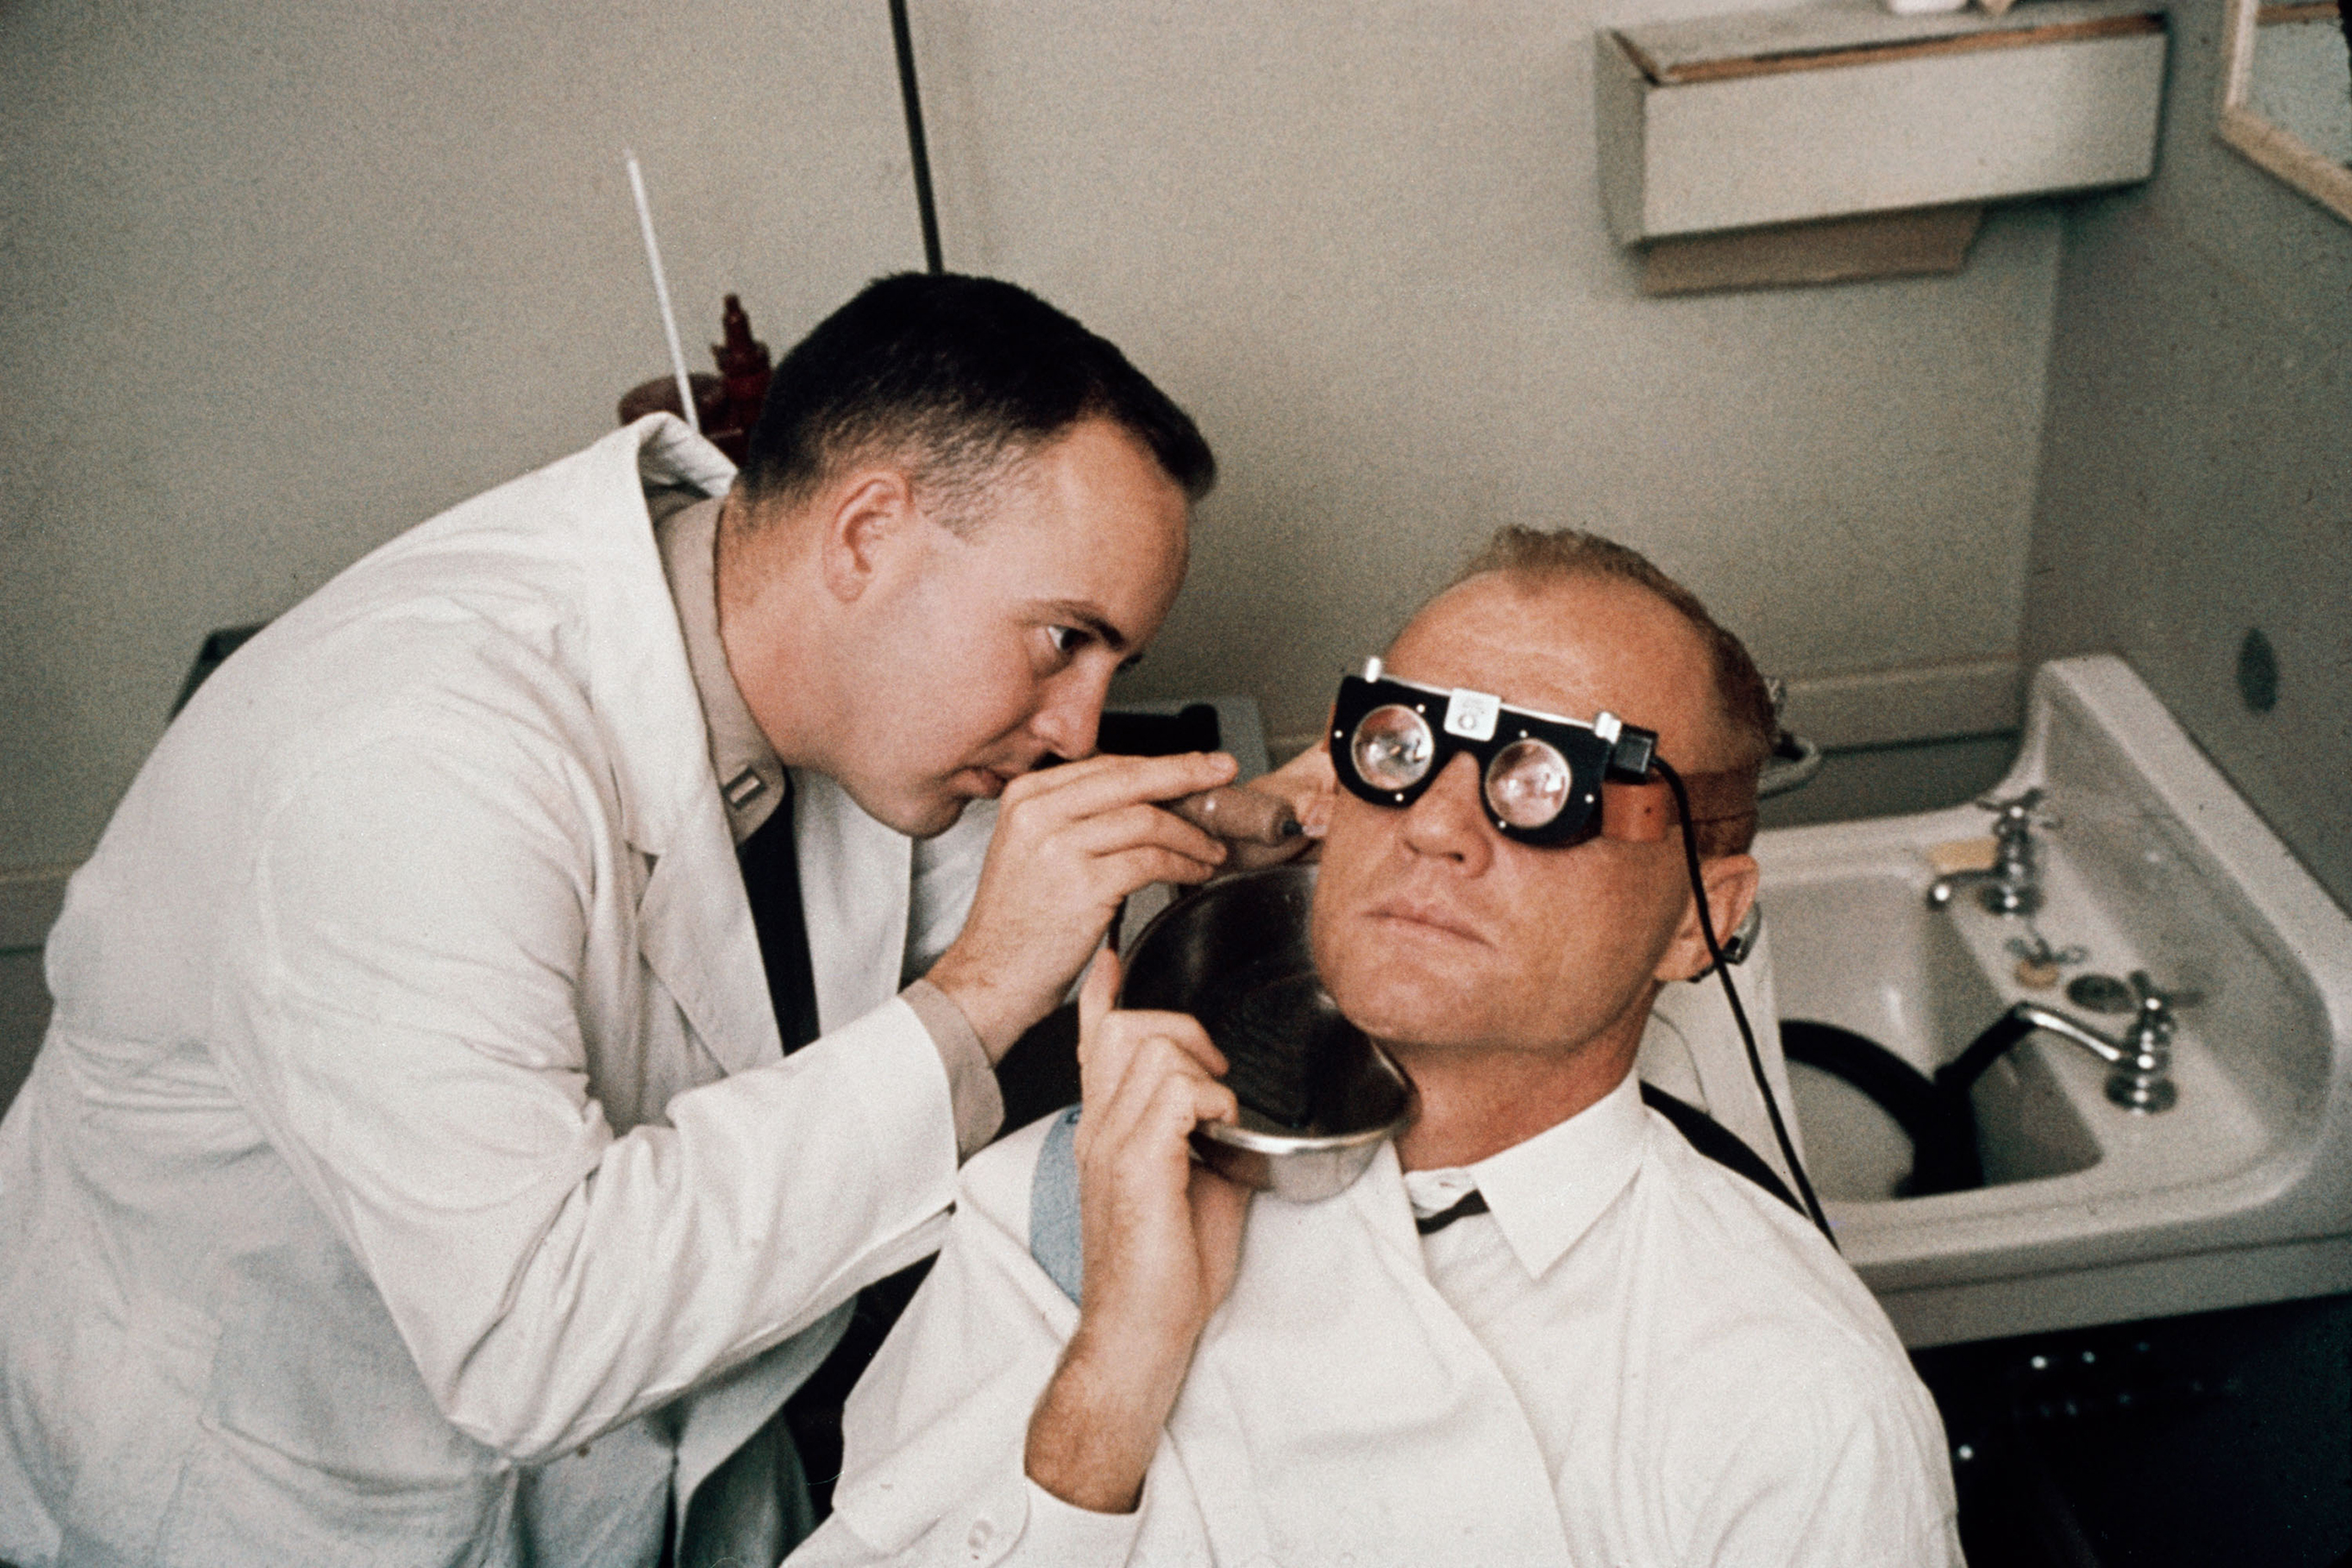 <b>Another Balance Test</b> Cold water is poured into Glenn's ear while goggles track his eye motions shortly before his 1962 flight. The water scrambles the balance system — one more test of how the astronaut would function in zero g.